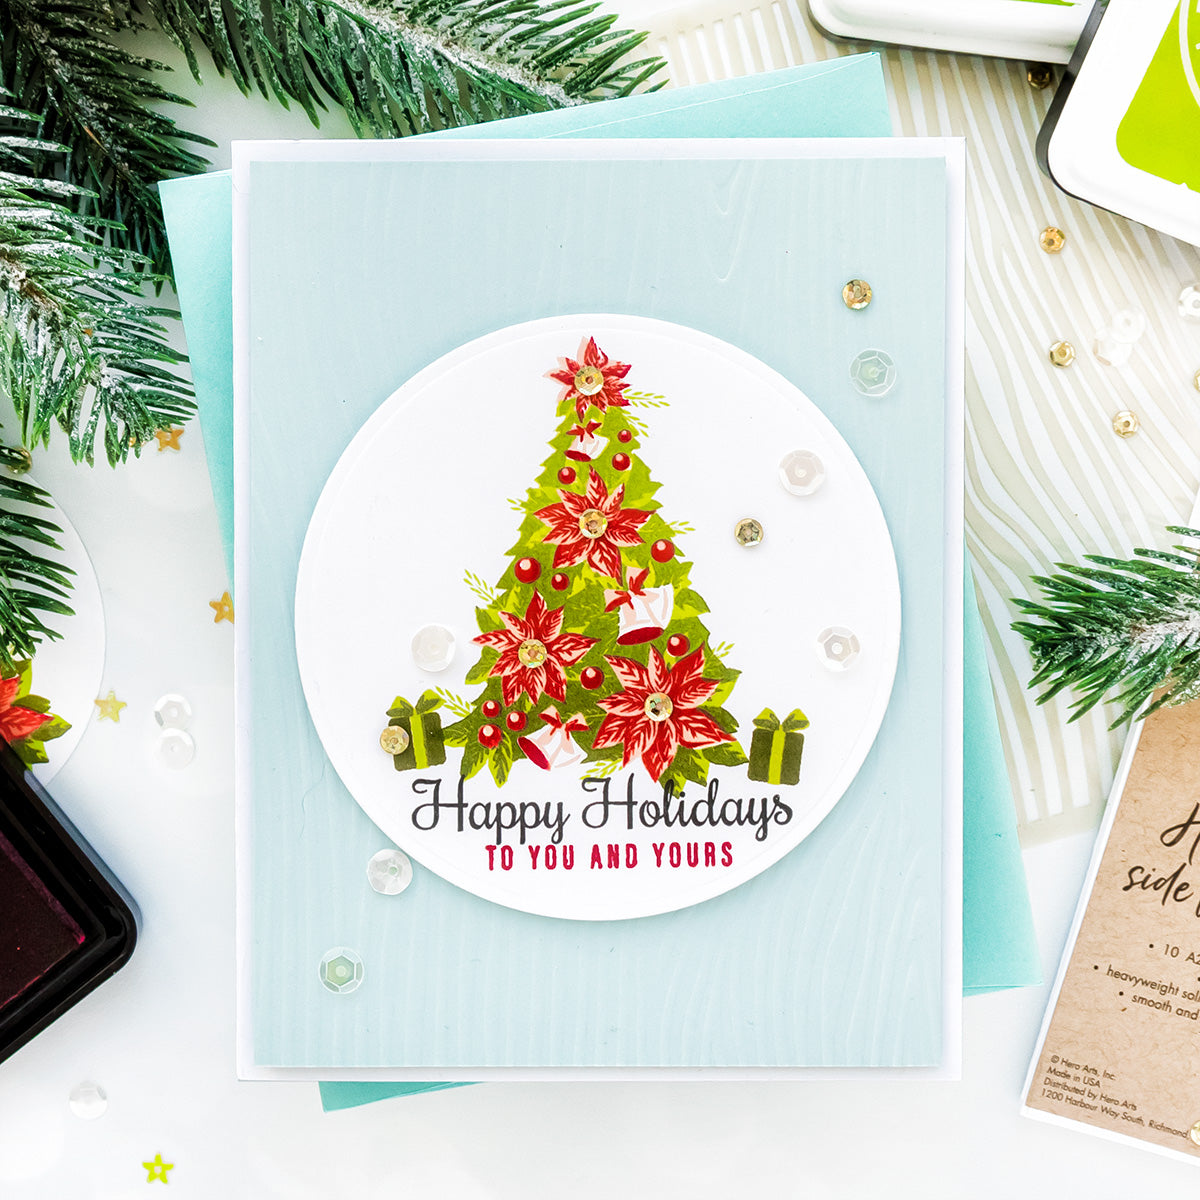 Poinsettias For Christmas 2020 Video: Poinsettia Christmas Tree | Color Layering With Yana Series